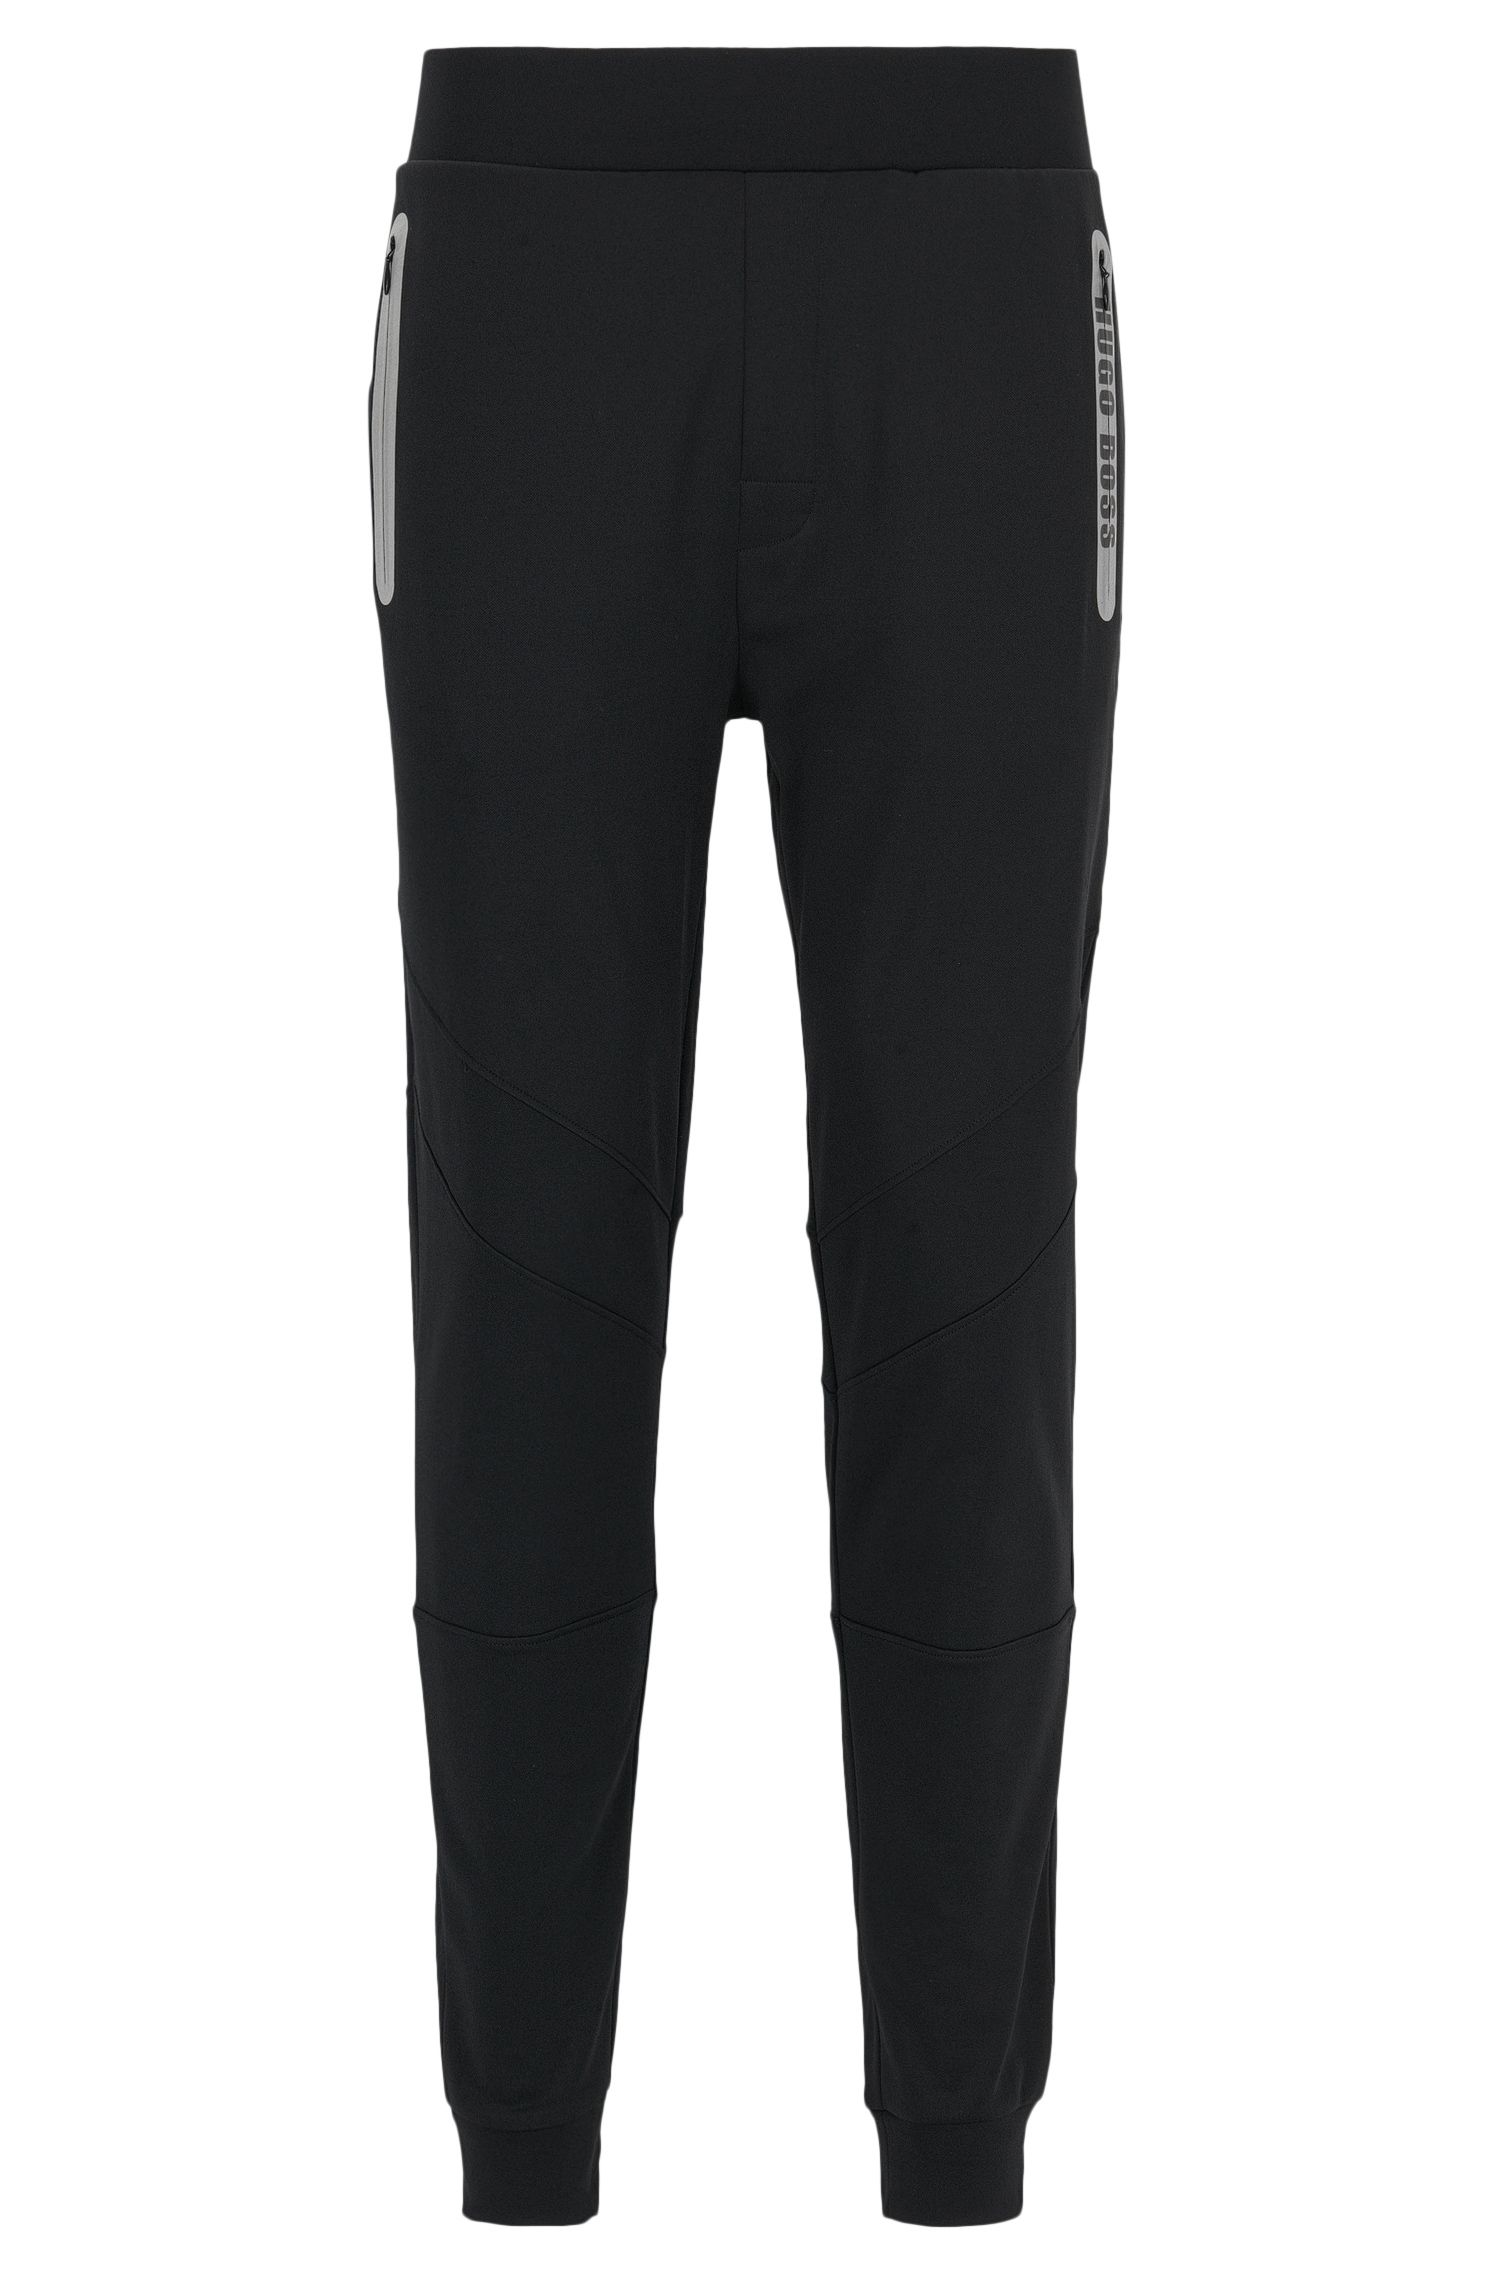 Cuffed loungewear trousers with sporty details in a stretch cotton blend